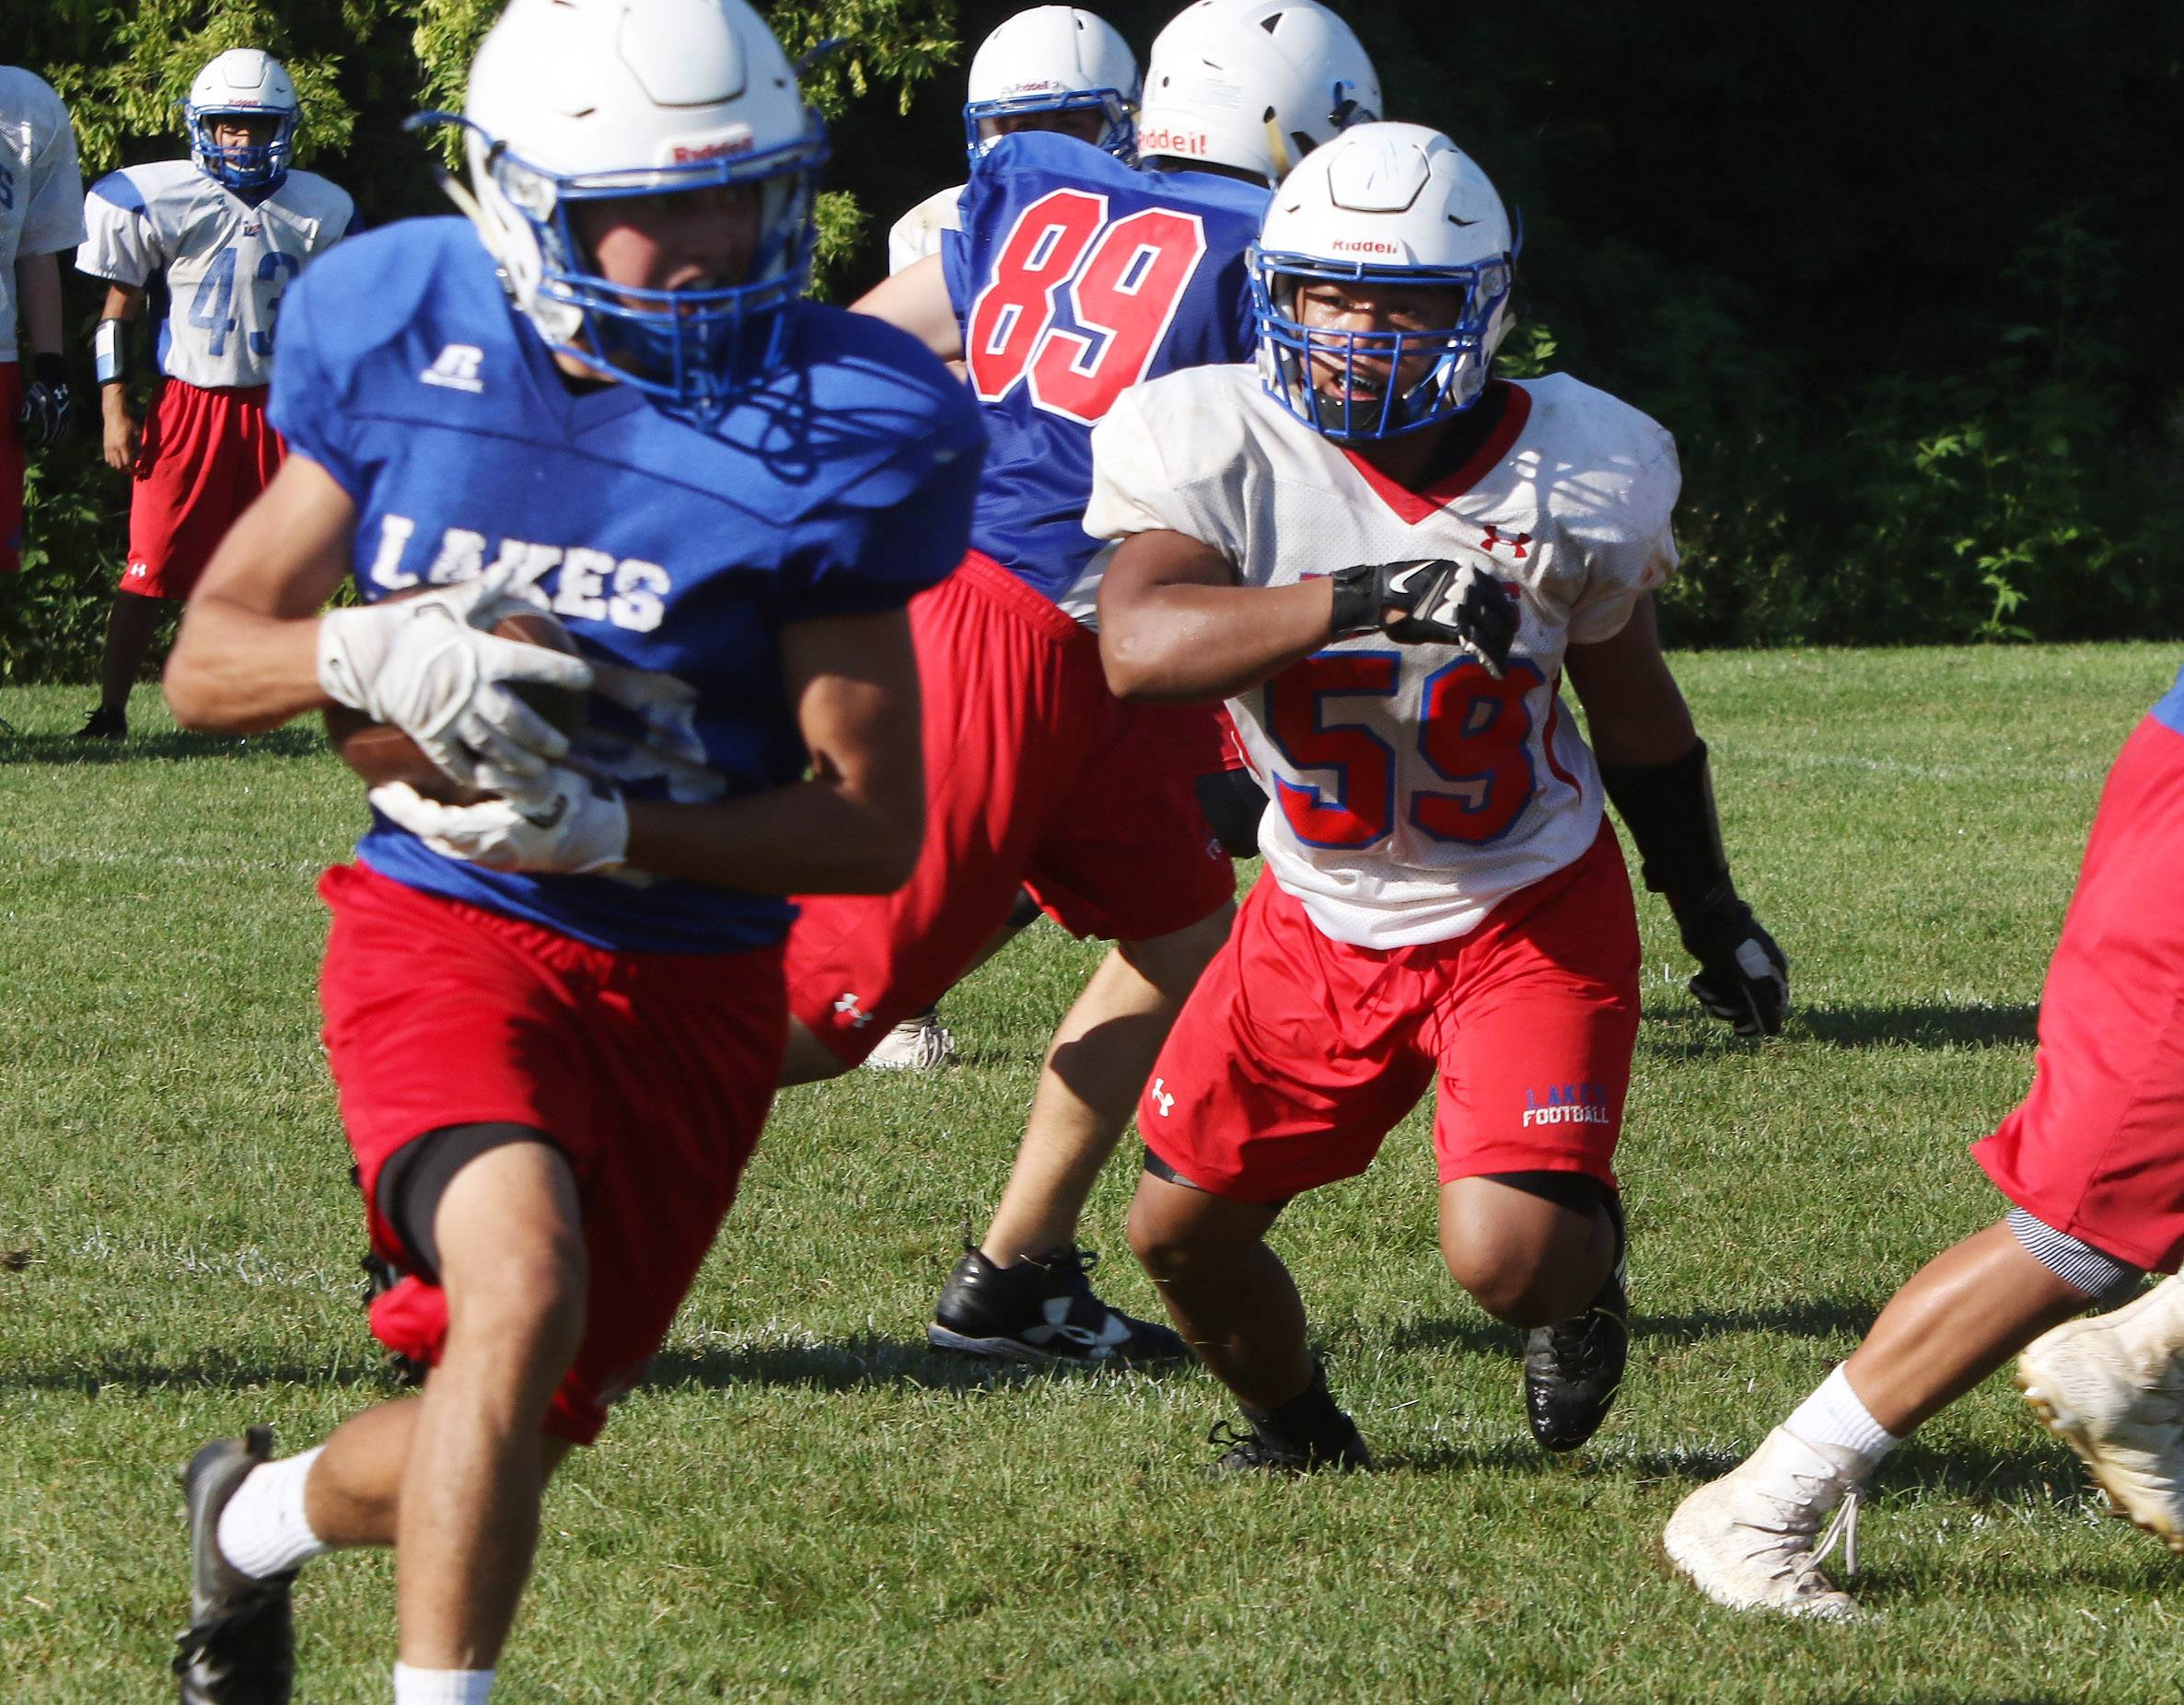 Lakes has Eder's positive approach up its sleeve